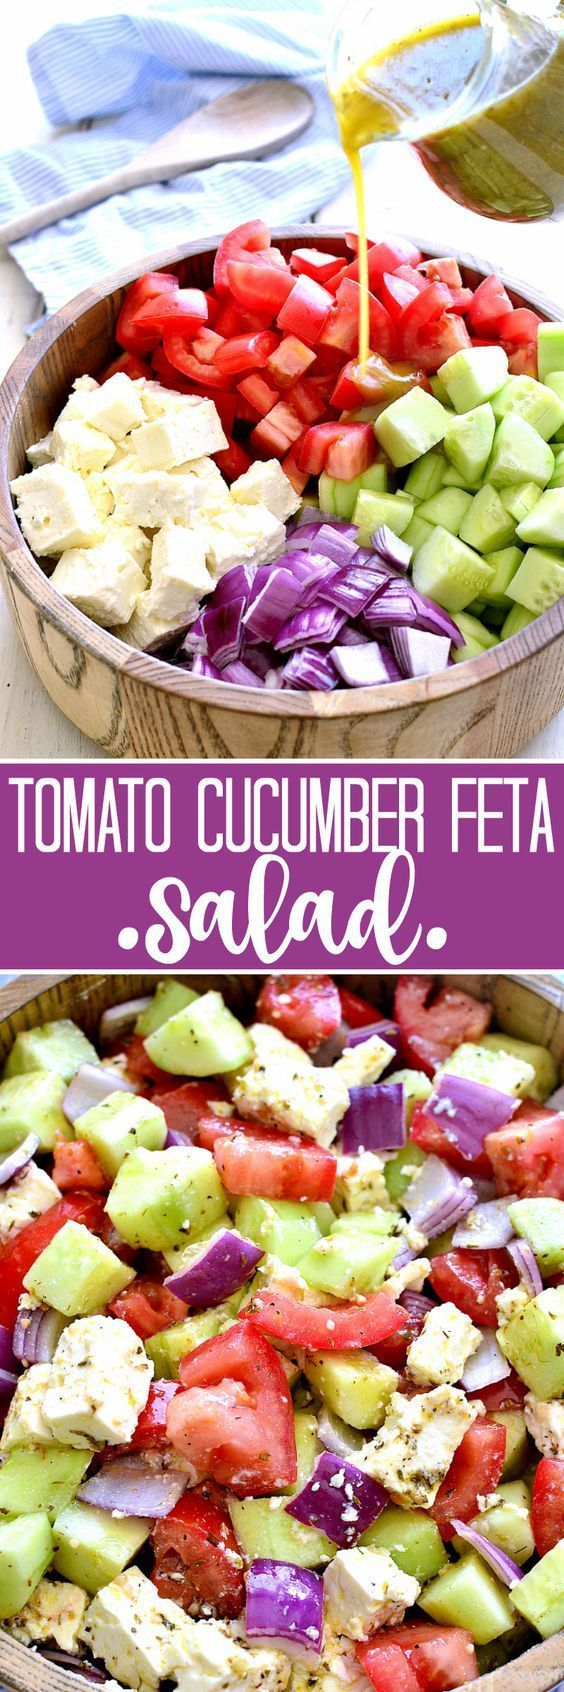 MUST EAT: This salad looks incredible! I'm going to pair it with chickpeas & tuna steak. Yum! You can get the recipe here.